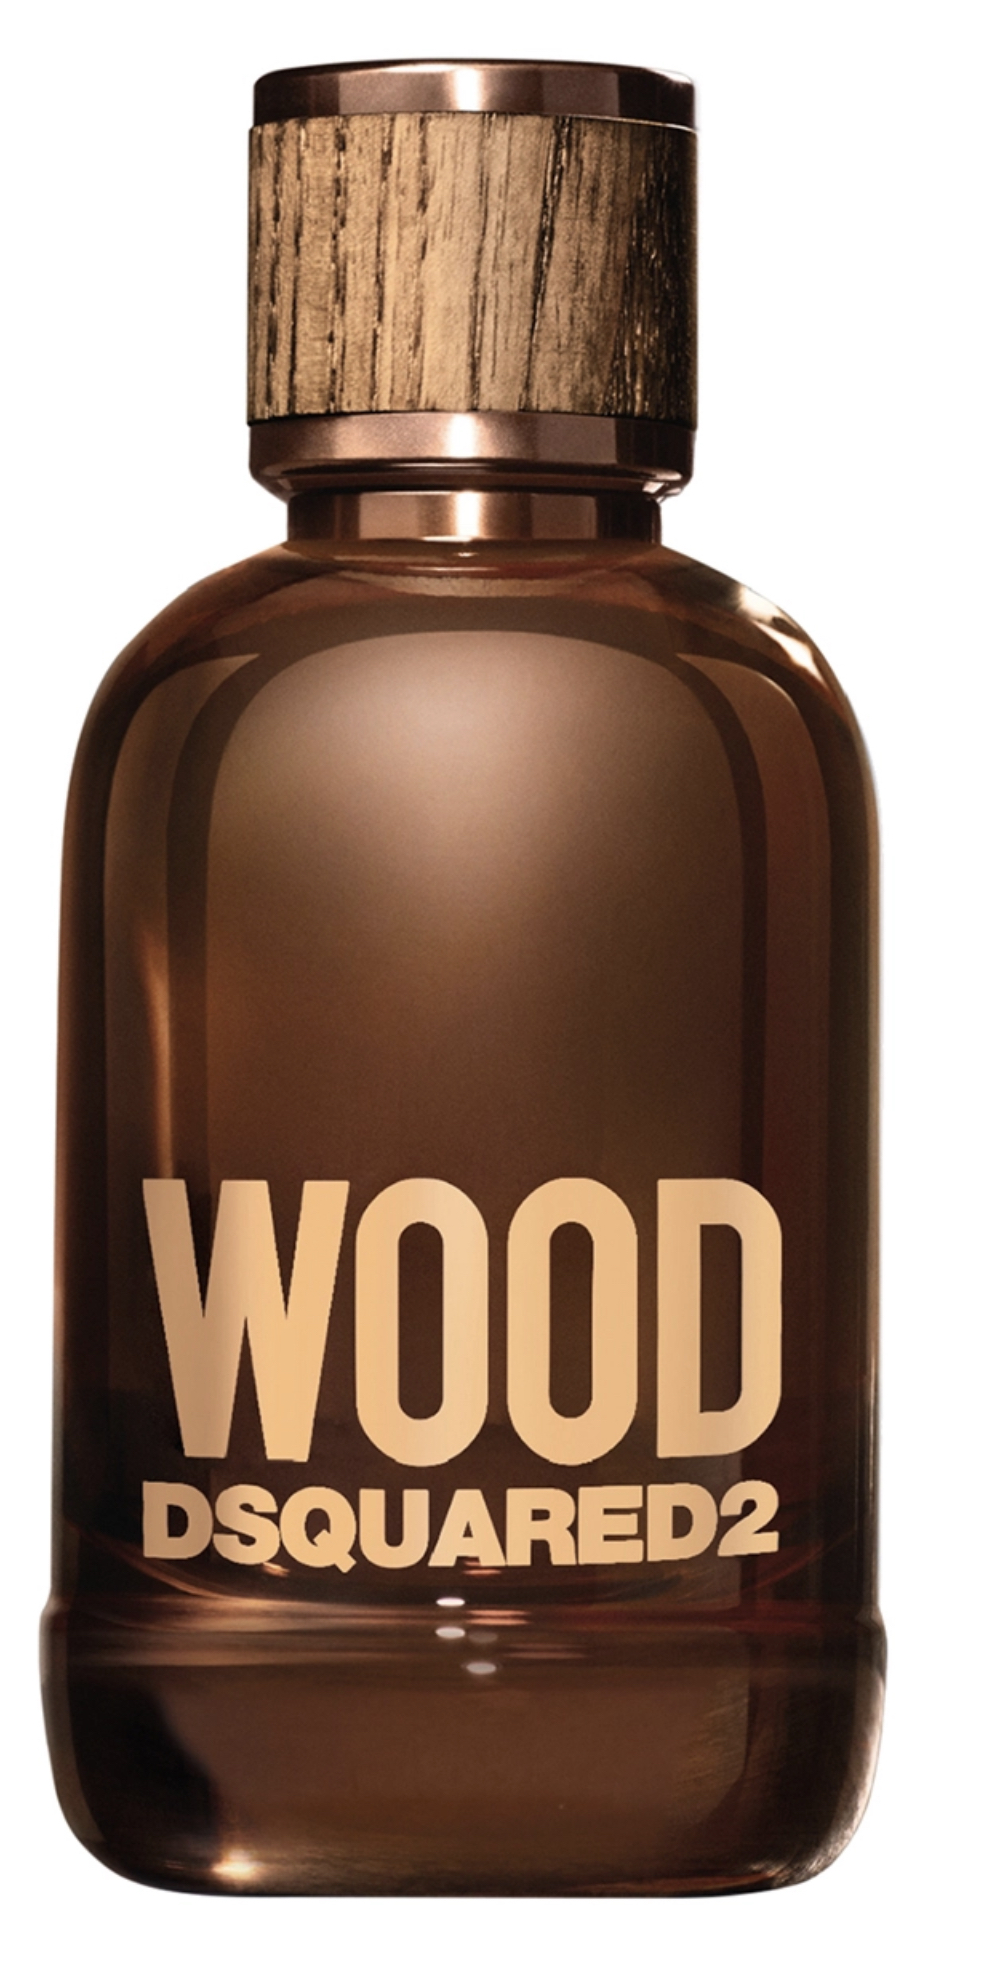 D Squared Wood for him Latest Launches Perfume Society